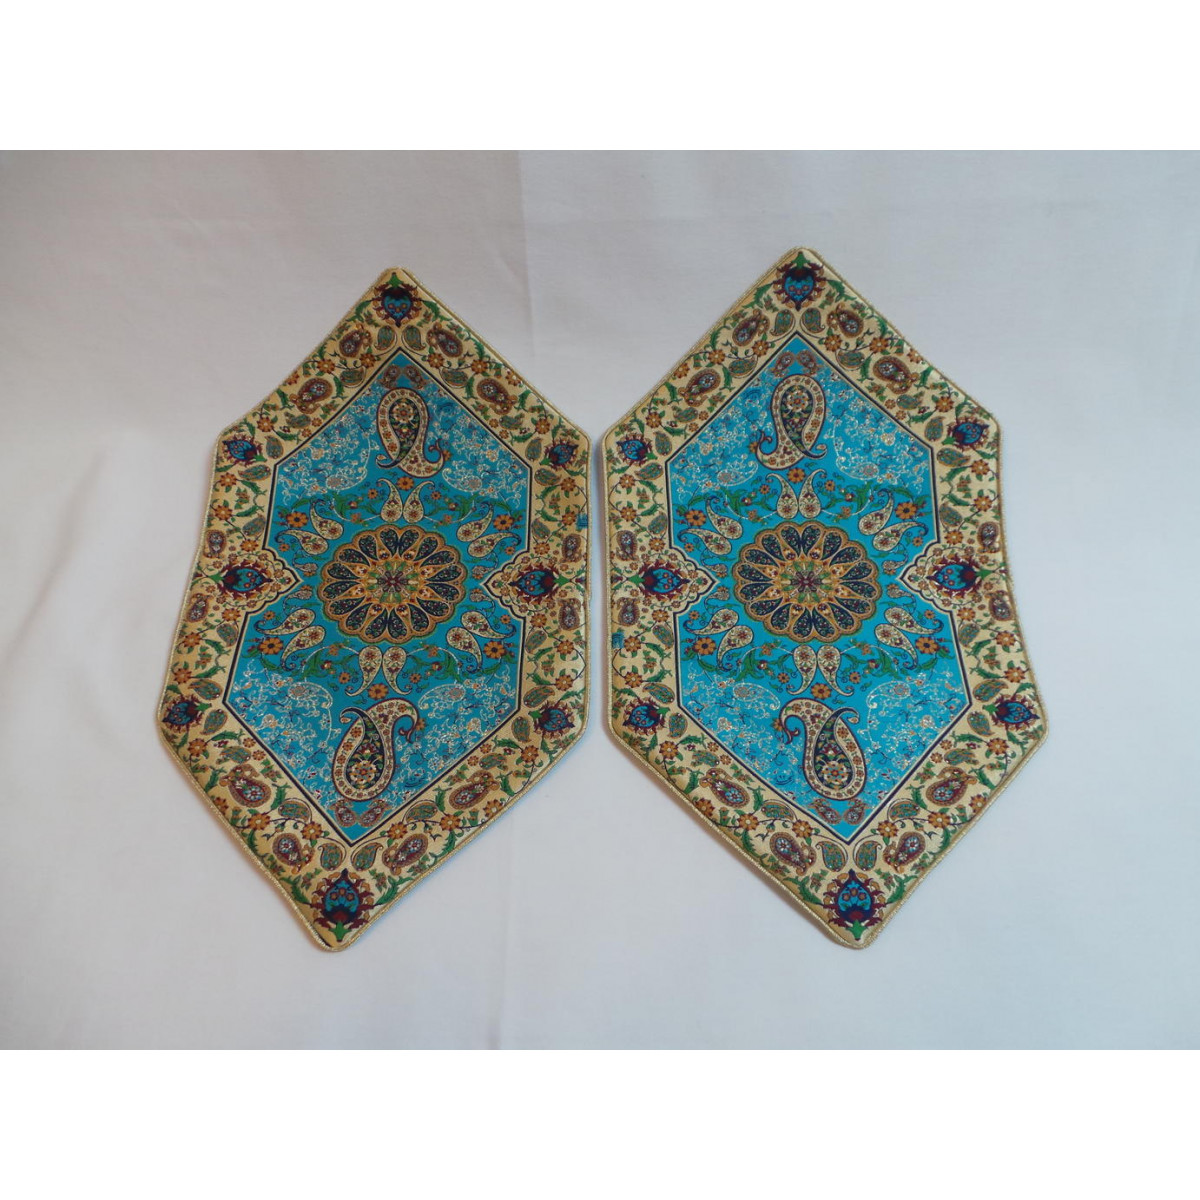 3PCS Termeh Luxury Tablecloth - HT3001